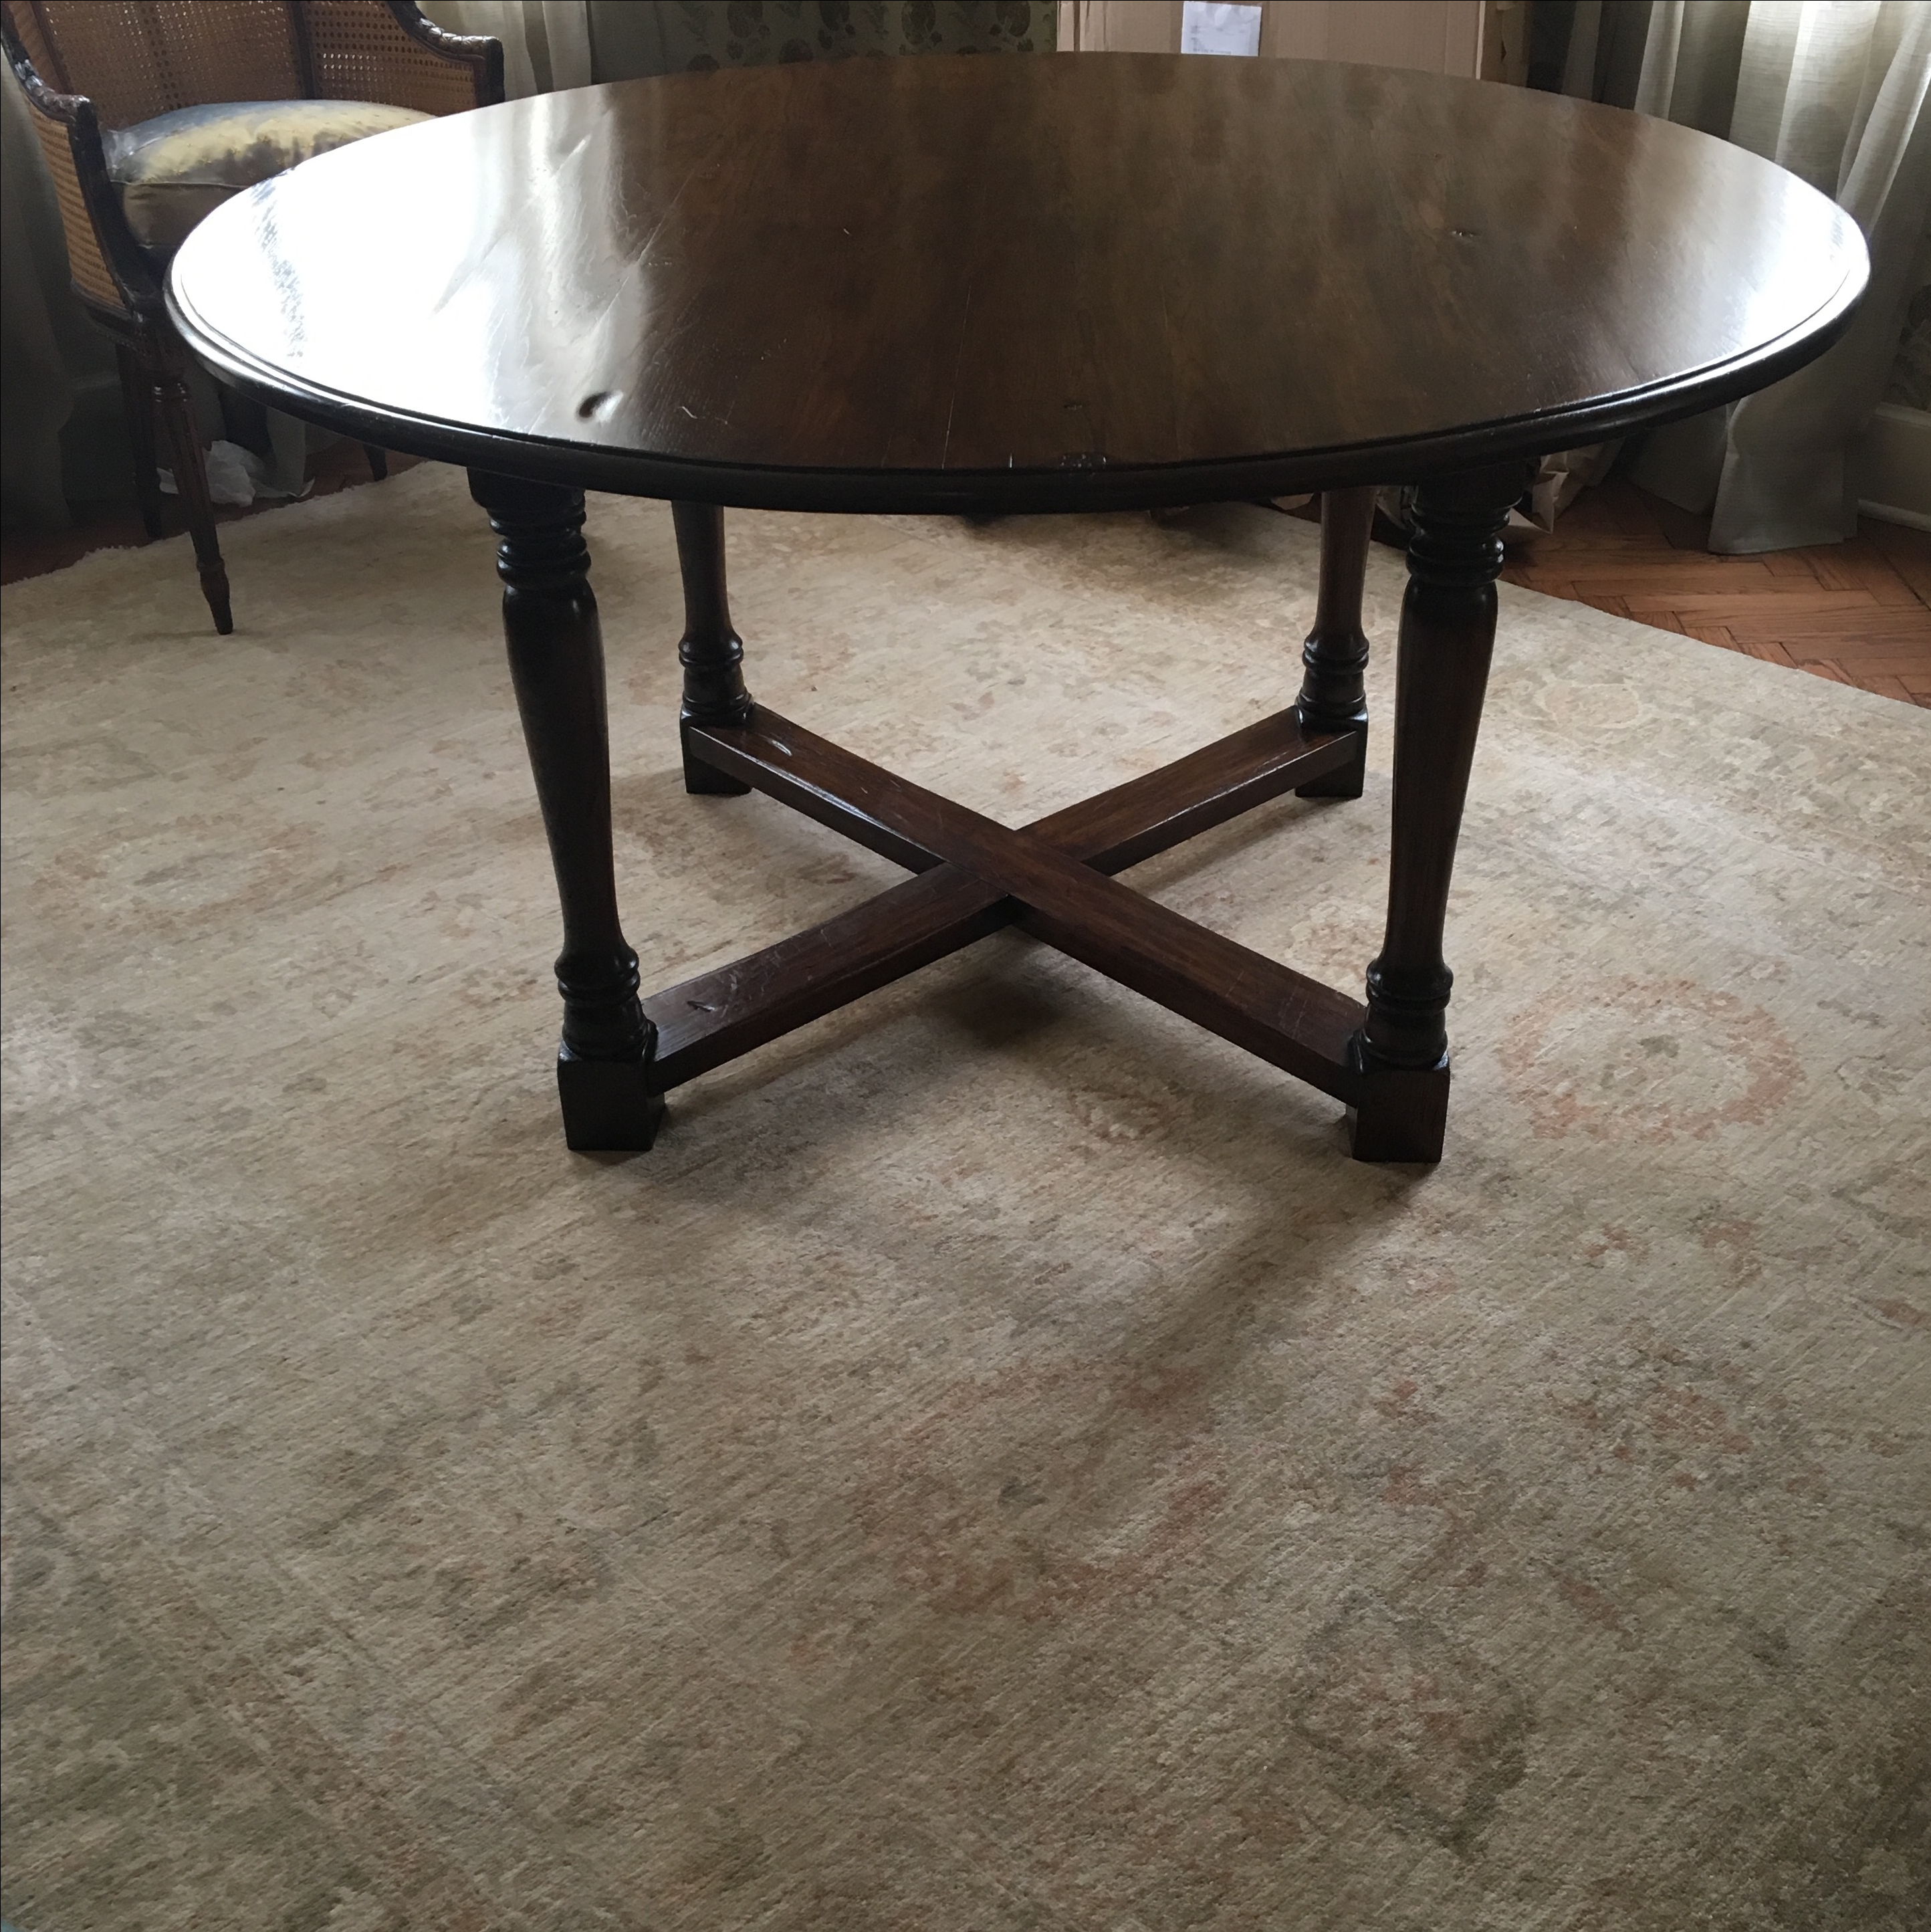 Antique Gate Leg Dining Table Chairish : 983e8c19 3755 42c6 a0d7 05efe2bec7f7aspectfitampwidth640ampheight640 from www.chairish.com size 640 x 640 jpeg 67kB